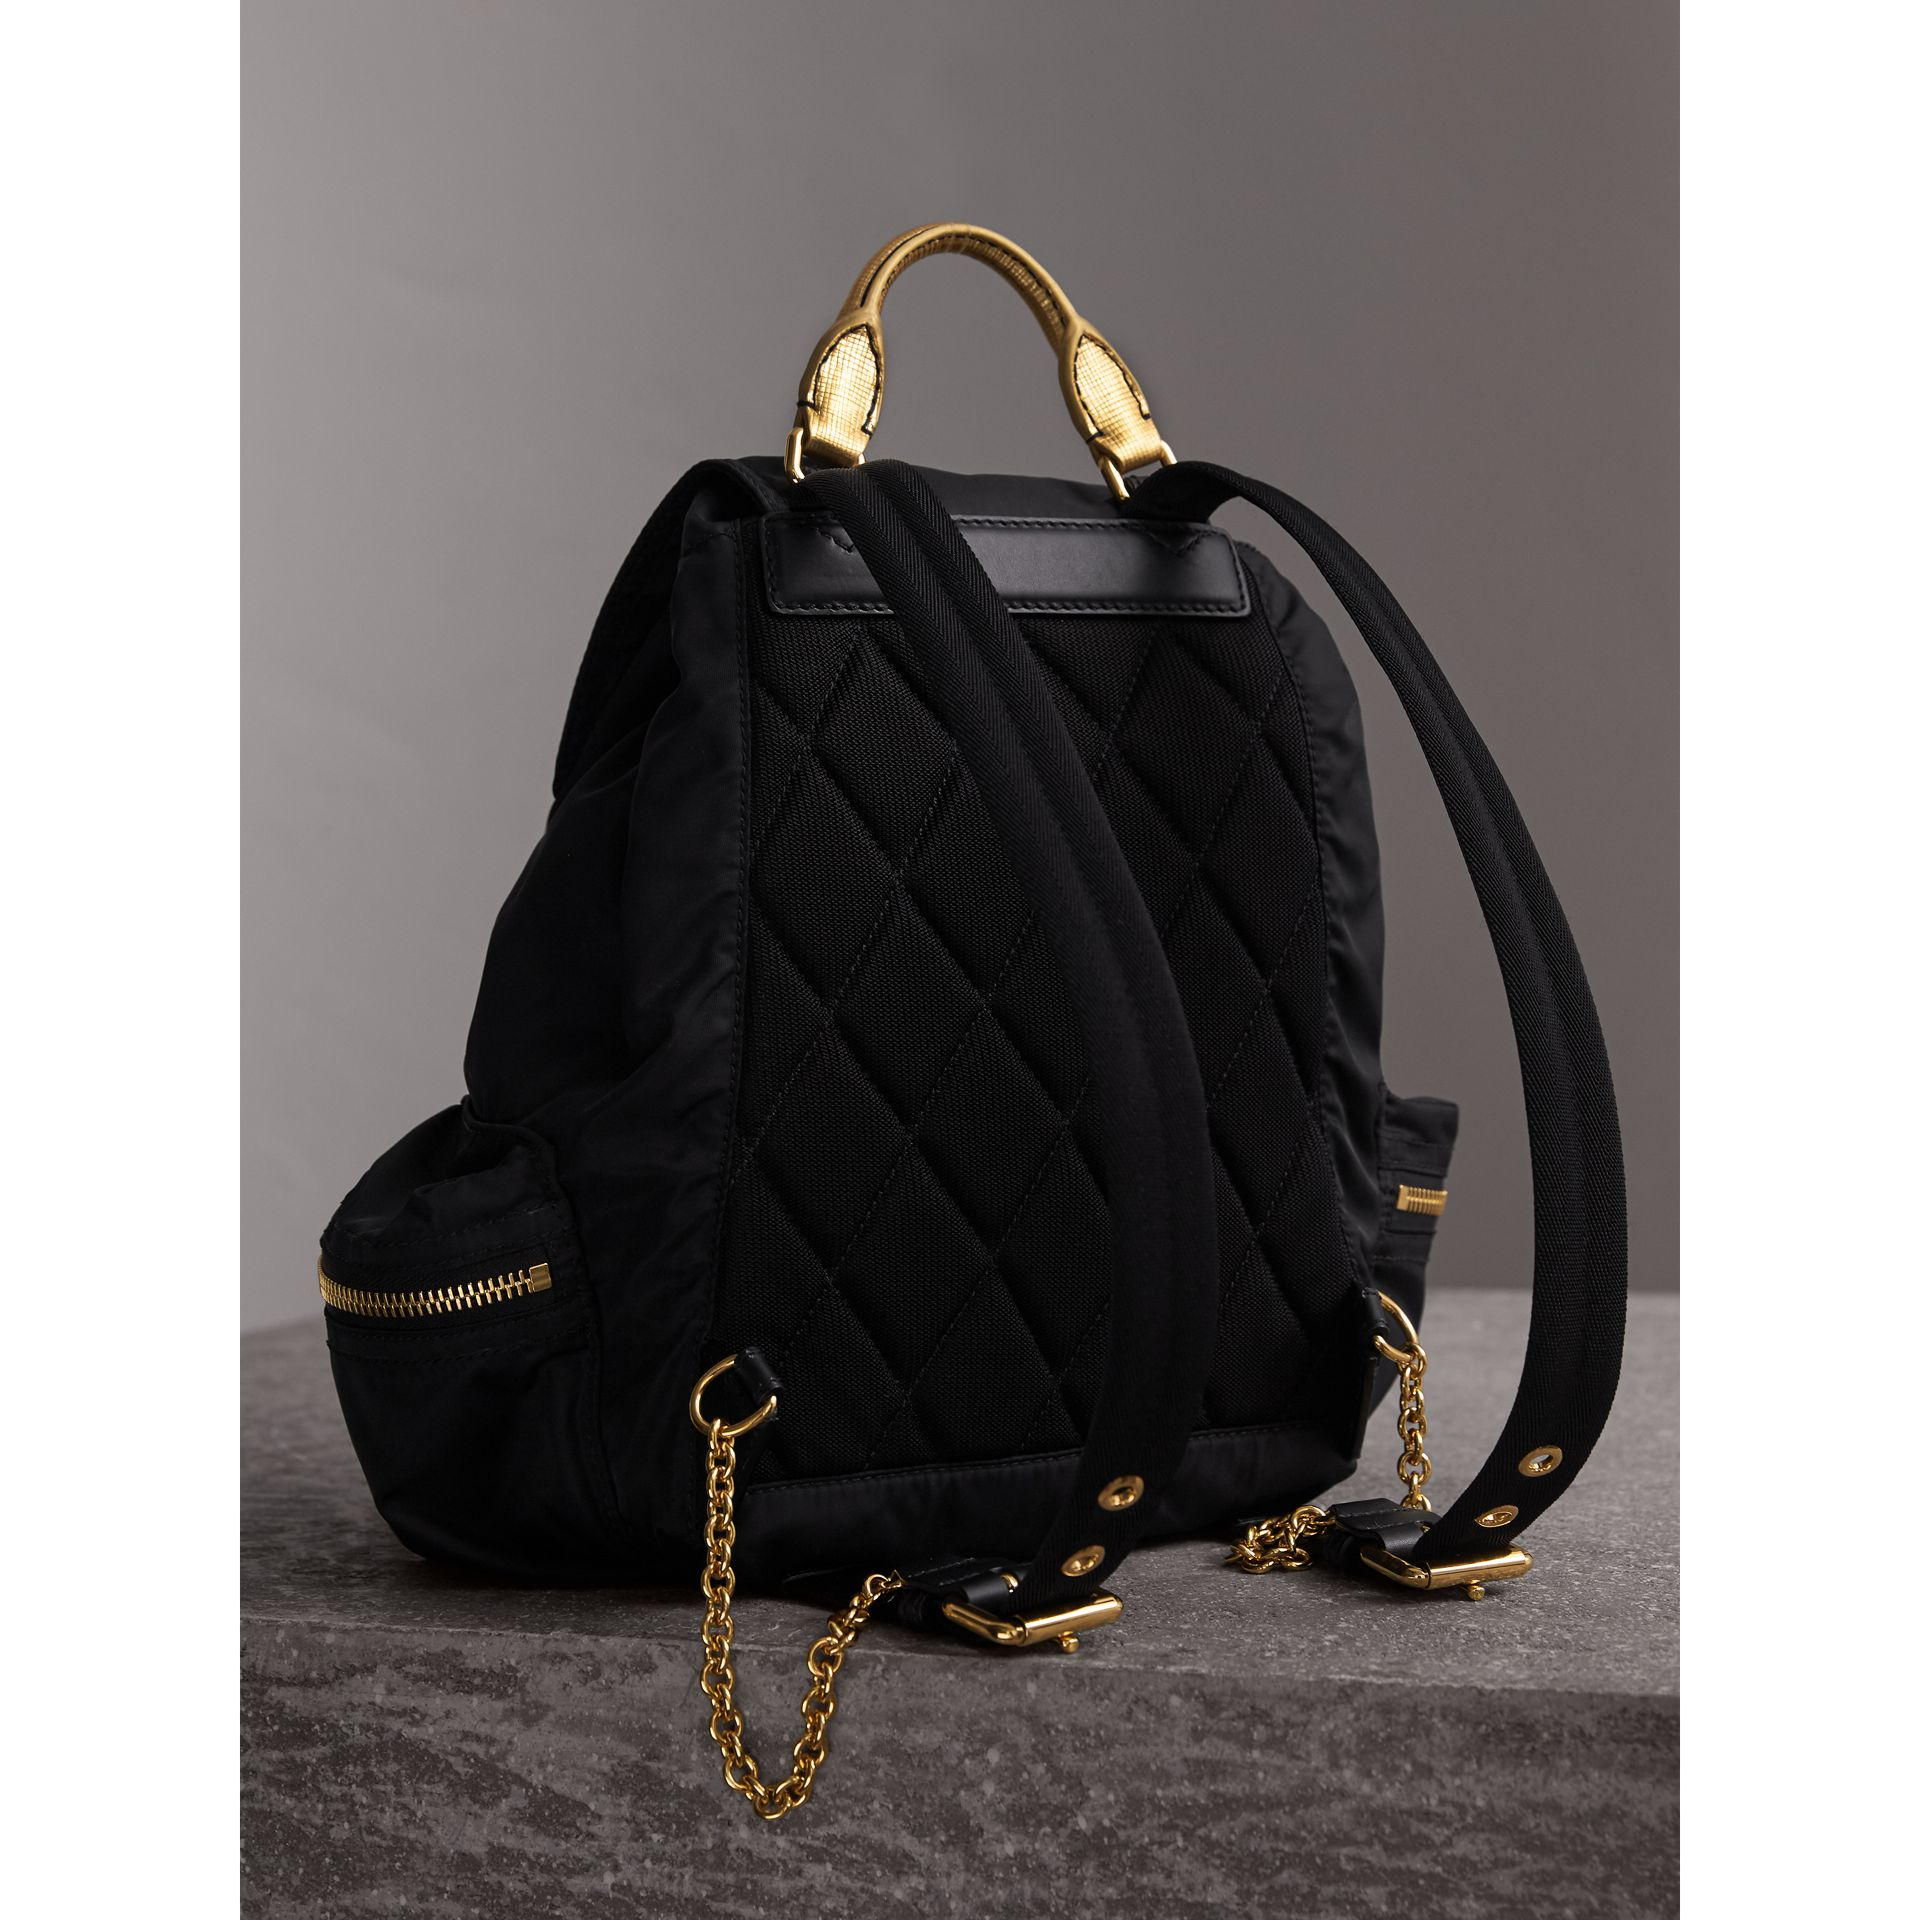 Sac The Rucksack moyen en nylon bicolore et cuir (Noir/or) - Femme | Burberry - photo de la galerie 4